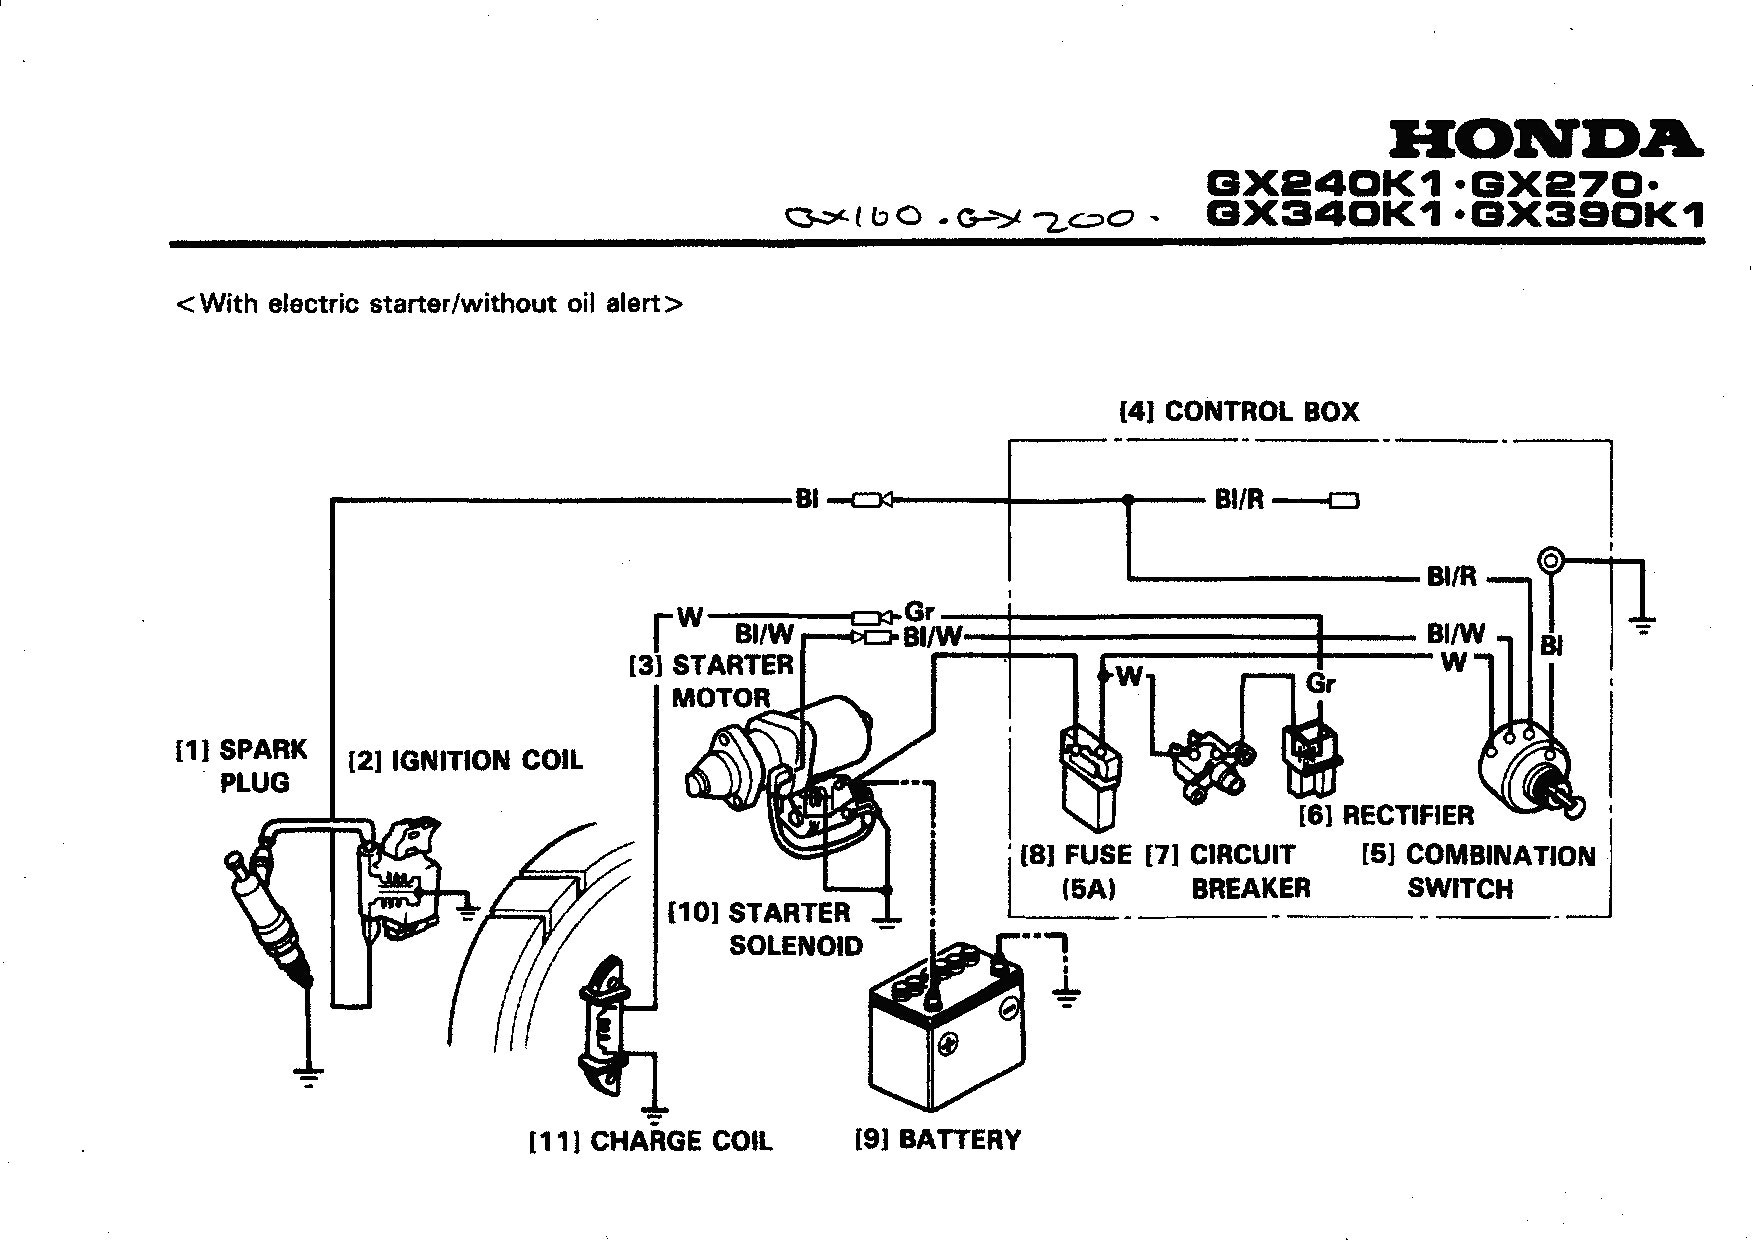 hight resolution of honda crx ignition wiring wiring diagram showhonda ignition diagram wiring diagram load honda crx ignition wiring